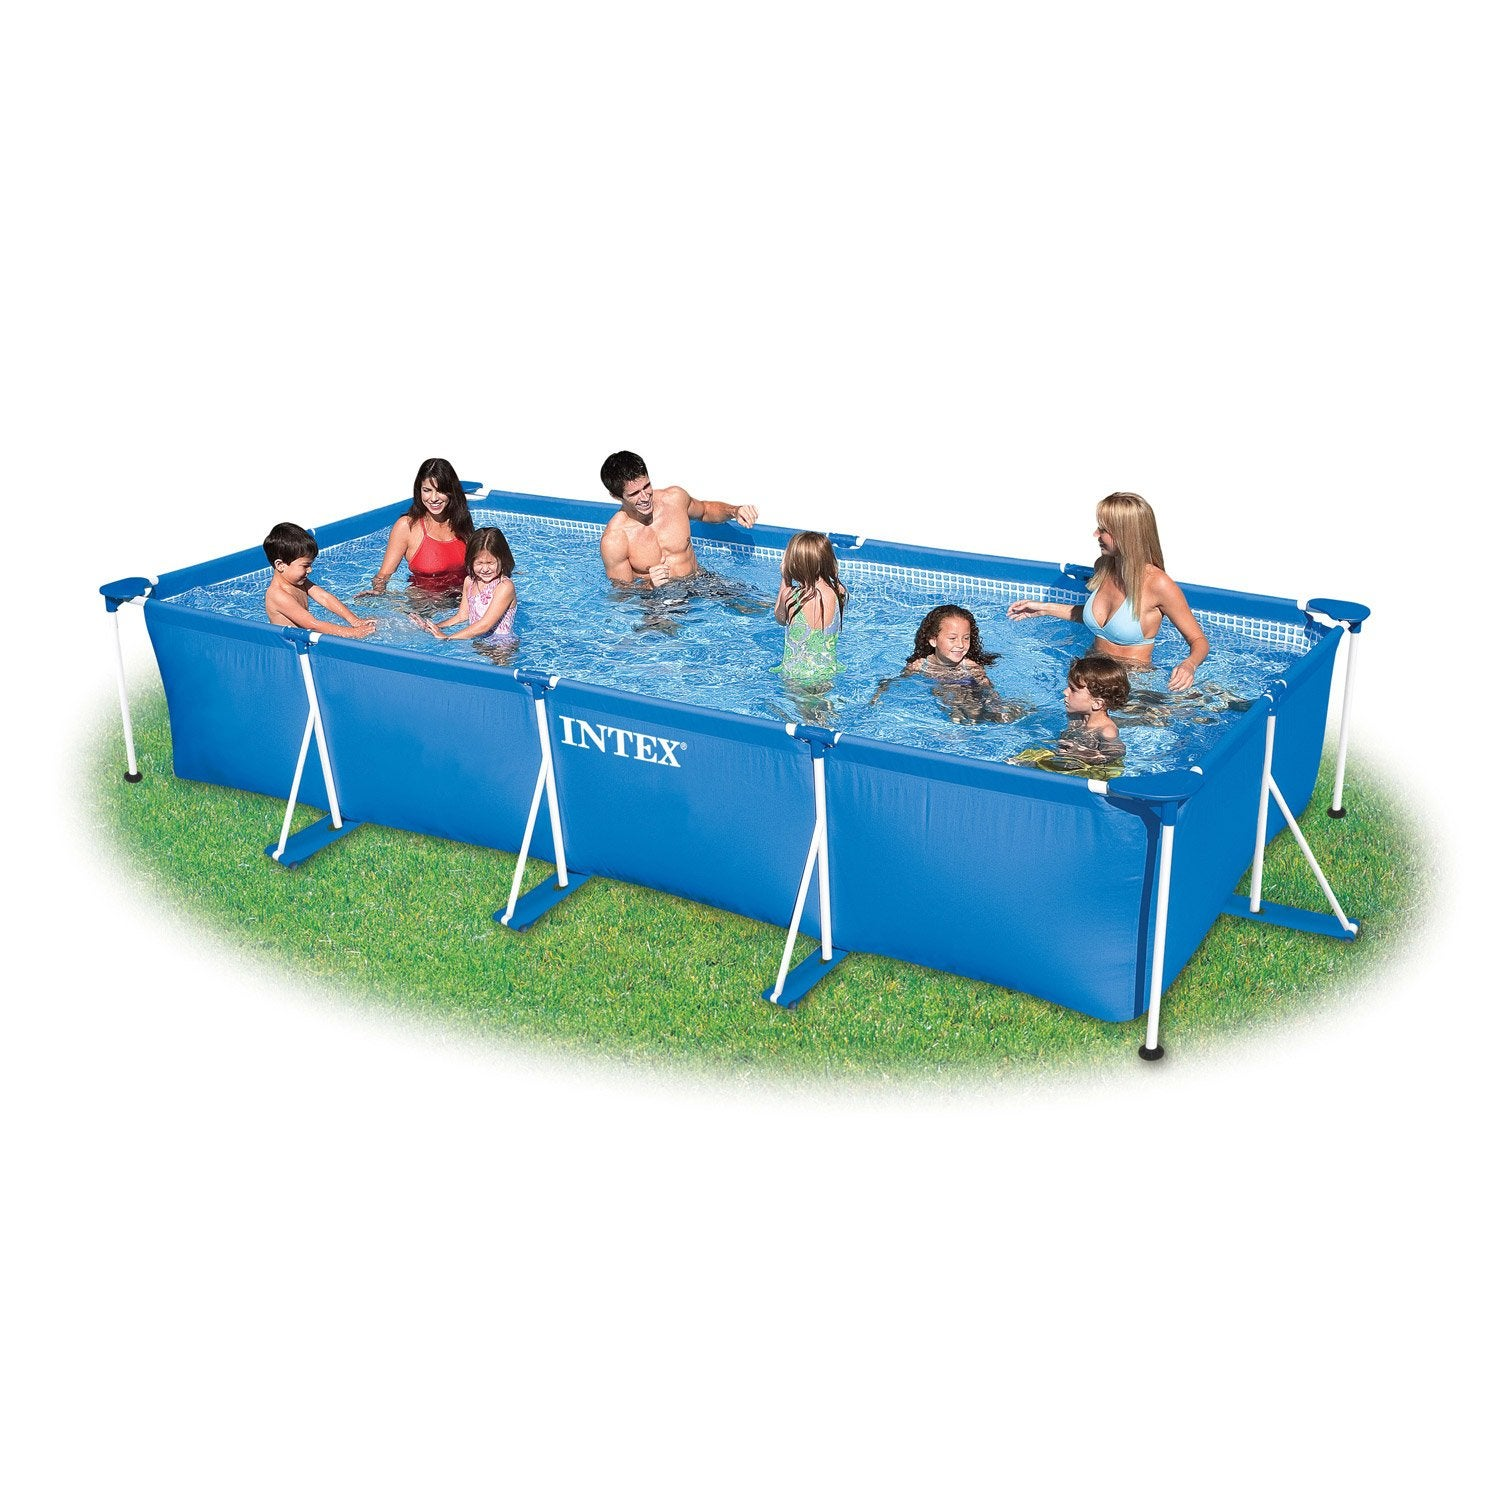 Piscine hors sol autoportante tubulaire intex l x l x h m leroy merlin for Piscines hors sol leroy merlin